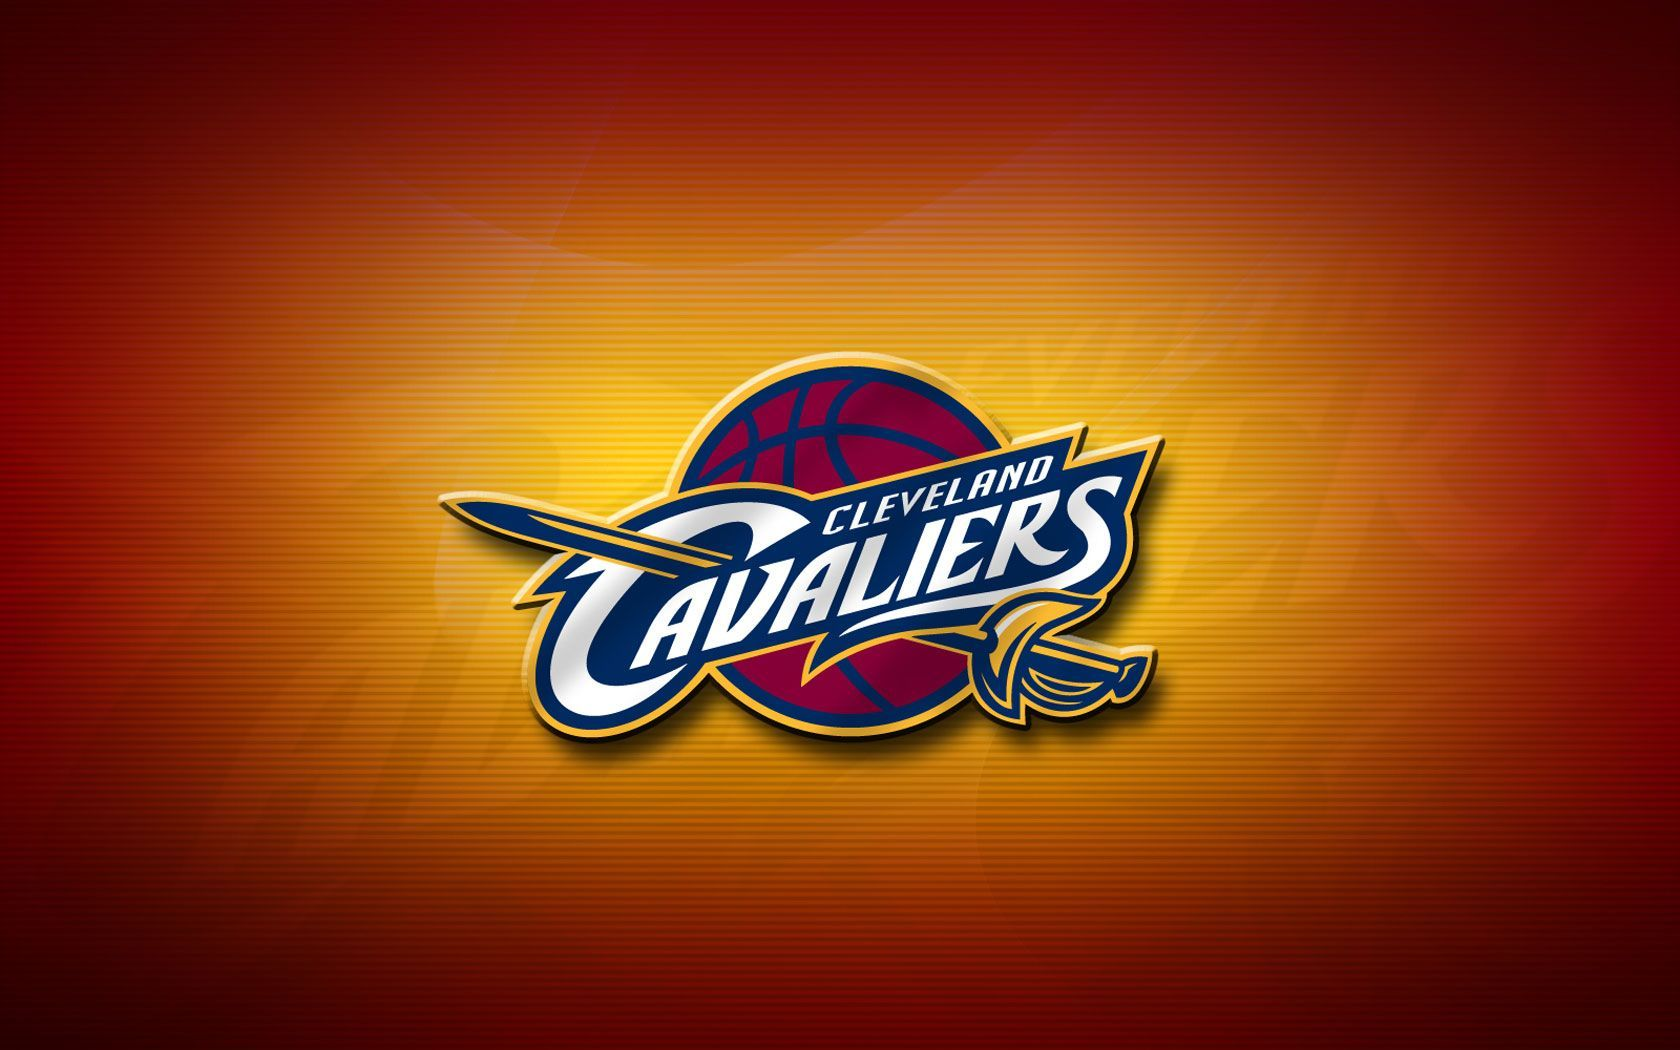 Basketball nba CLEVELAND CAVALIERS LOGO wallpaper 1680x1050 128339 1680x1050